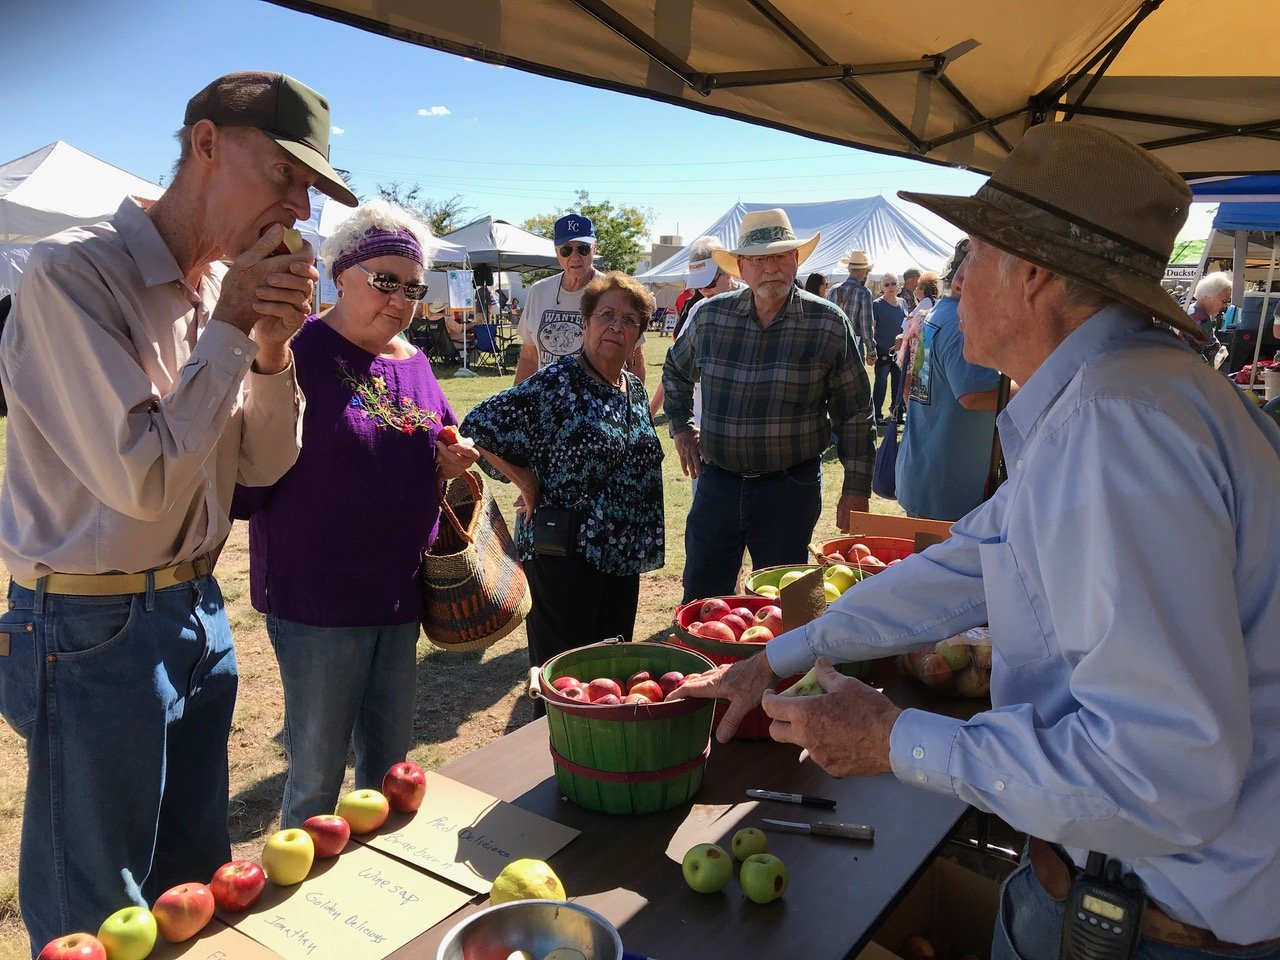 Plenty of local apples, a staple of every excellent harvest festival, will be available at the Mimbres Valley Harvest Festival.